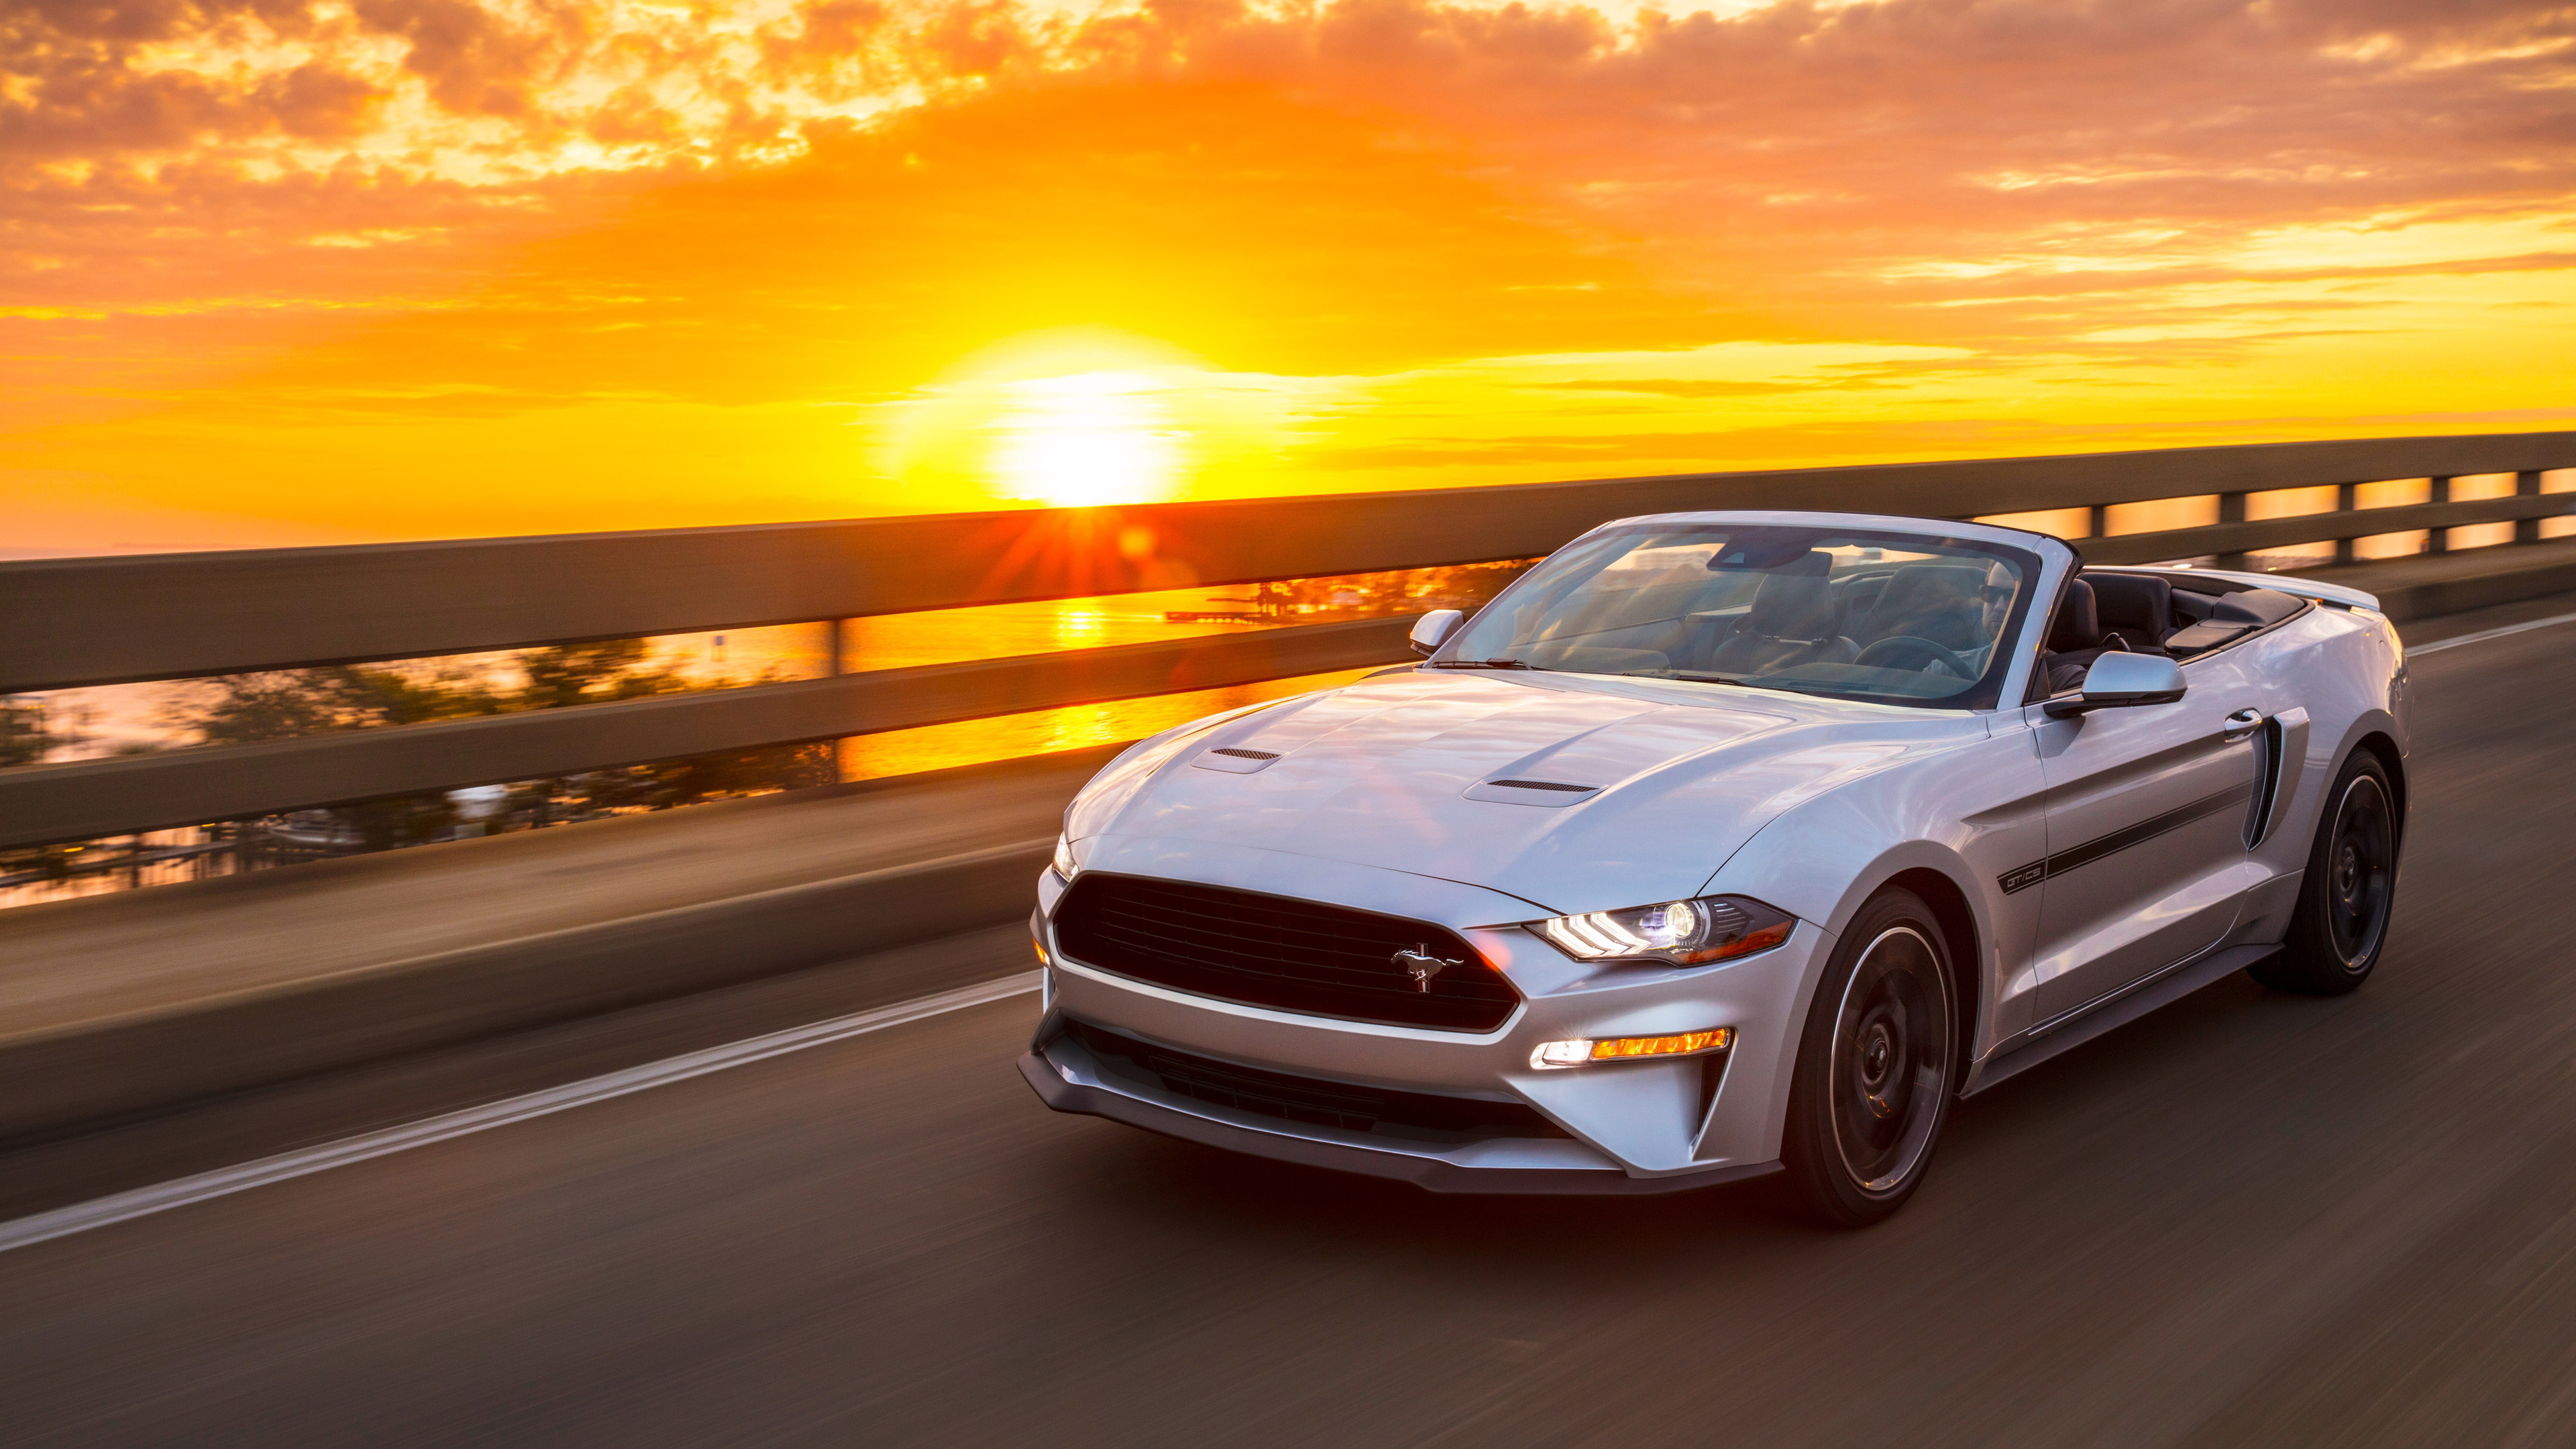 ford mustang gt convertible 2019 1539110284 - Ford Mustang GT Convertible 2019 - mustang wallpapers, hd-wallpapers, ford mustang wallpapers, convertible cars wallpapers, cars wallpapers, 4k-wallpapers, 2019 cars wallpapers